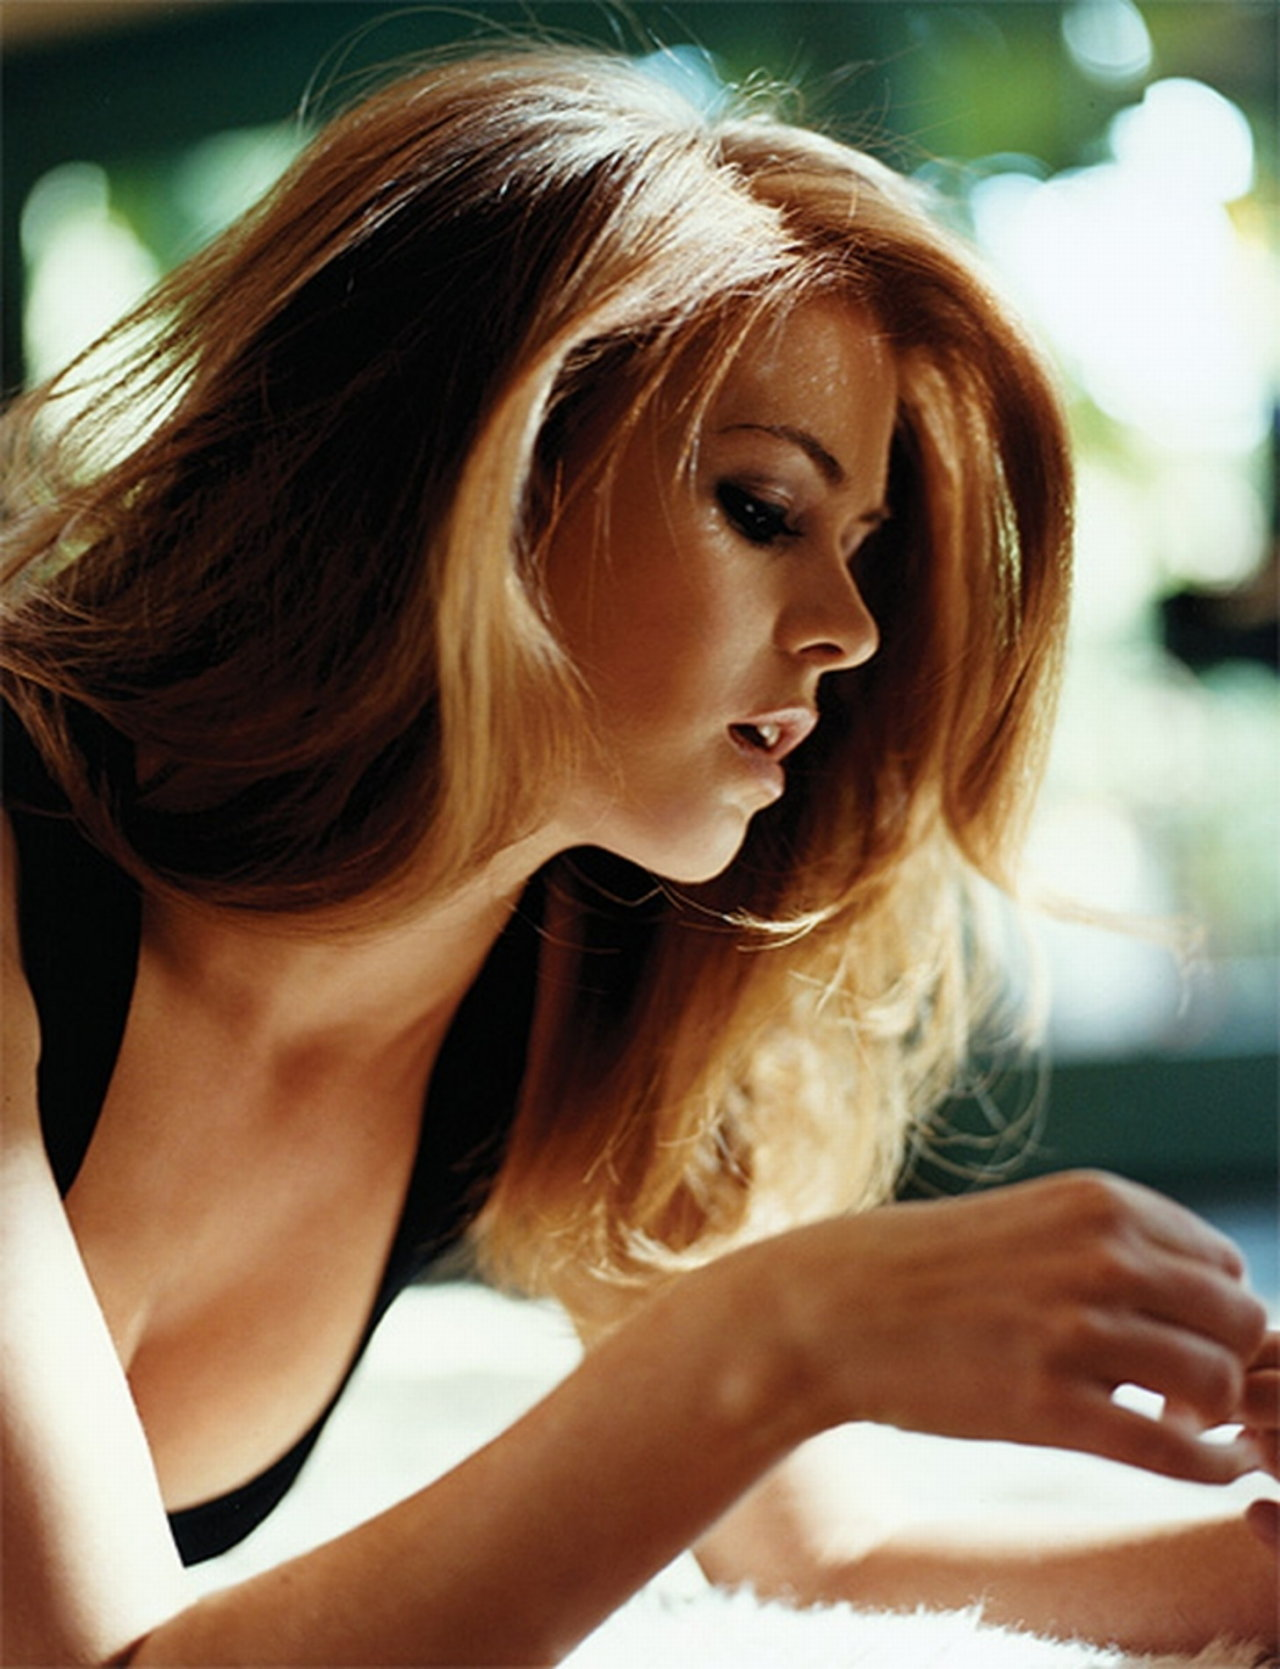 Isla Fisher, who has no connection to  Maxim Ultra  outside my imagination.